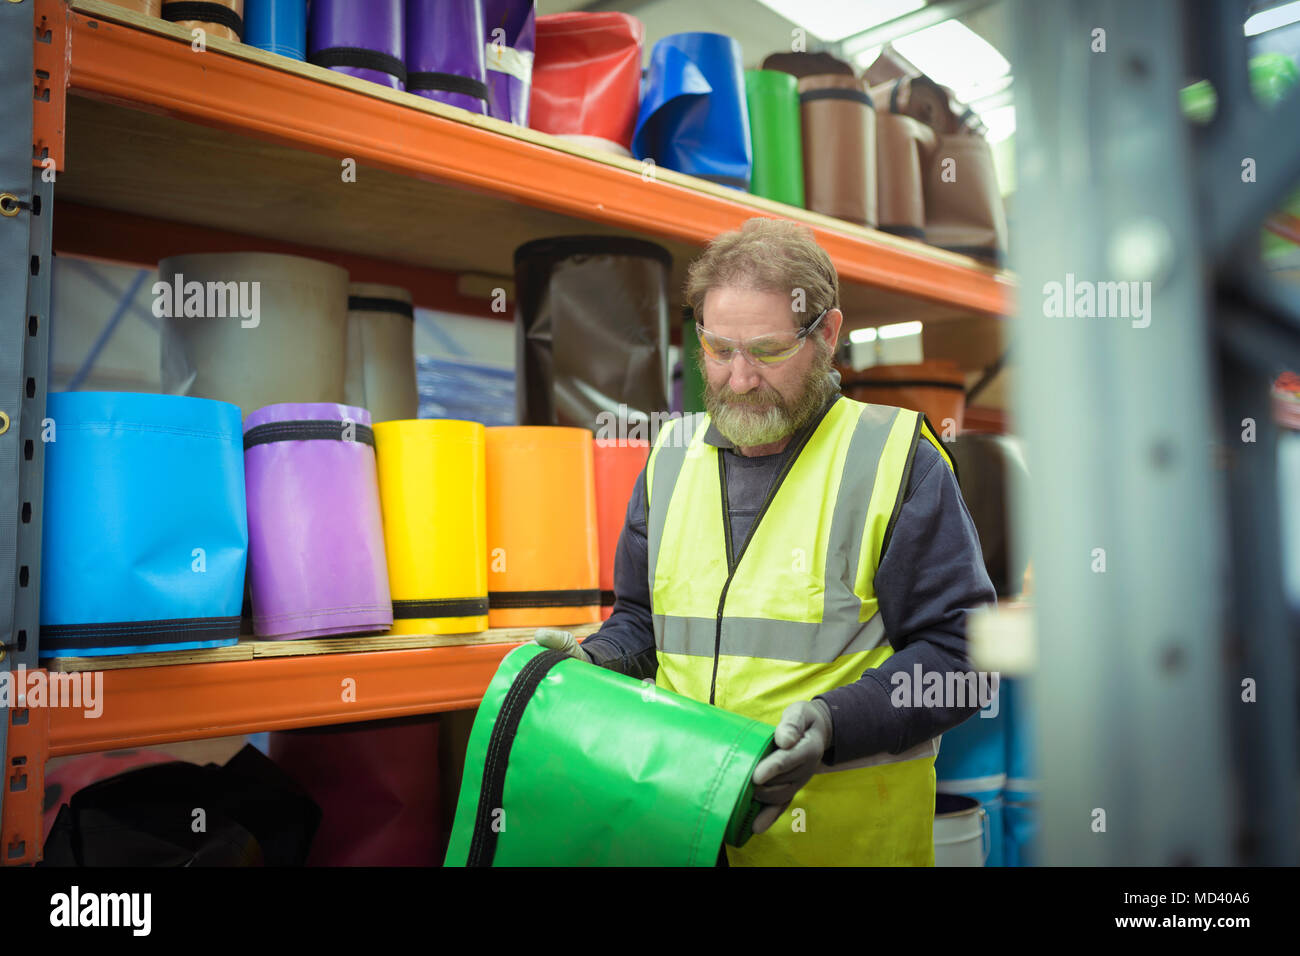 Worker selecting coloured vinyl rolls in factory - Stock Image